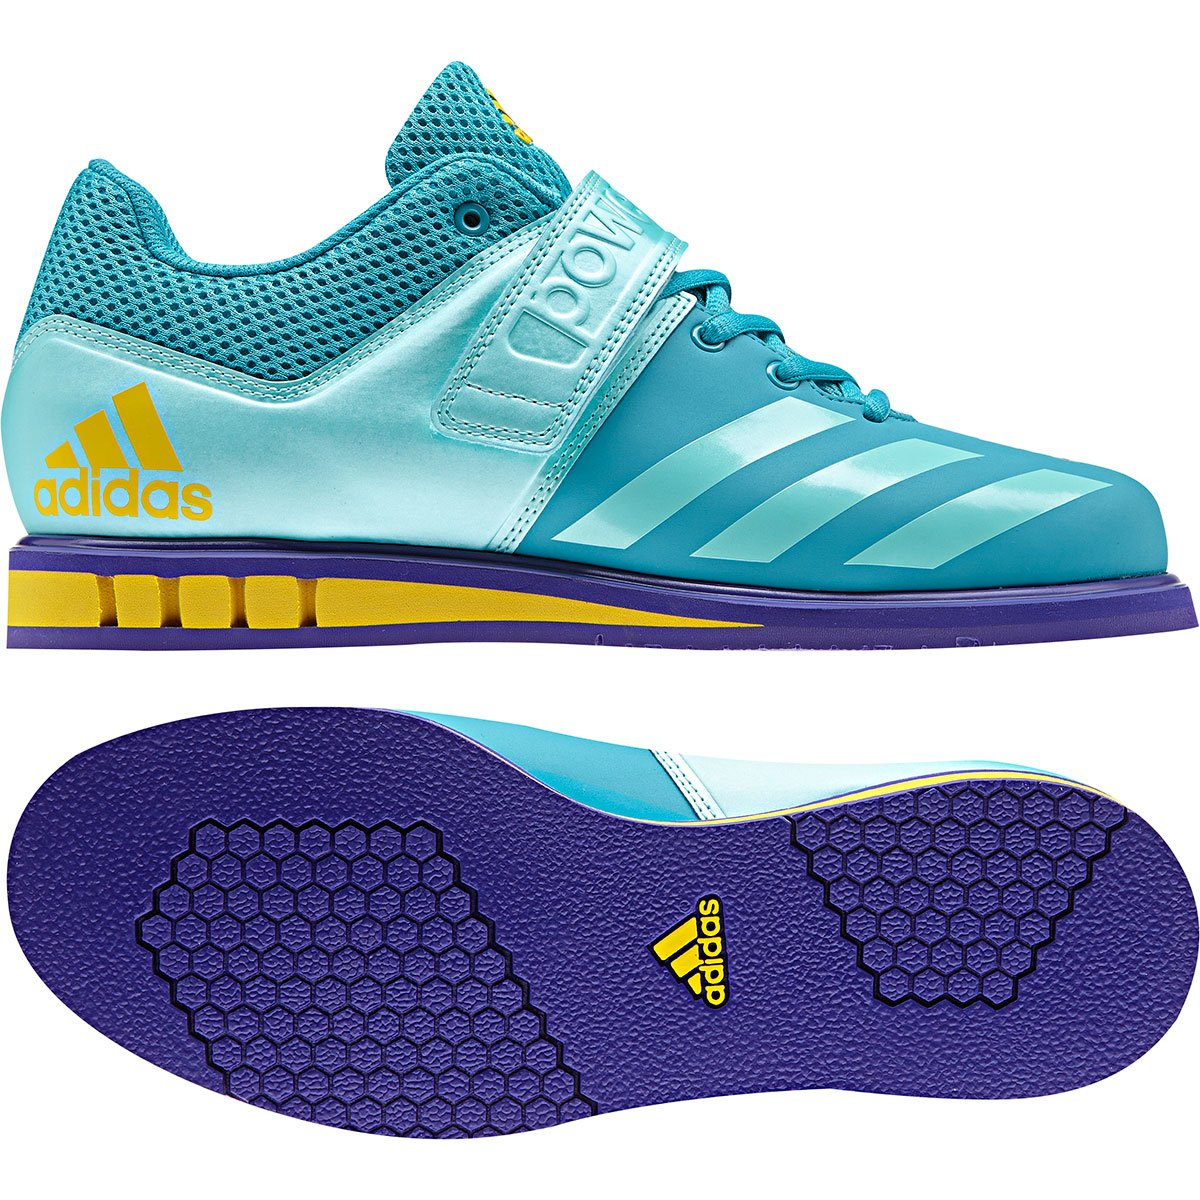 Adidas Womens Powerlift 3.1 Weightlifting Shoes